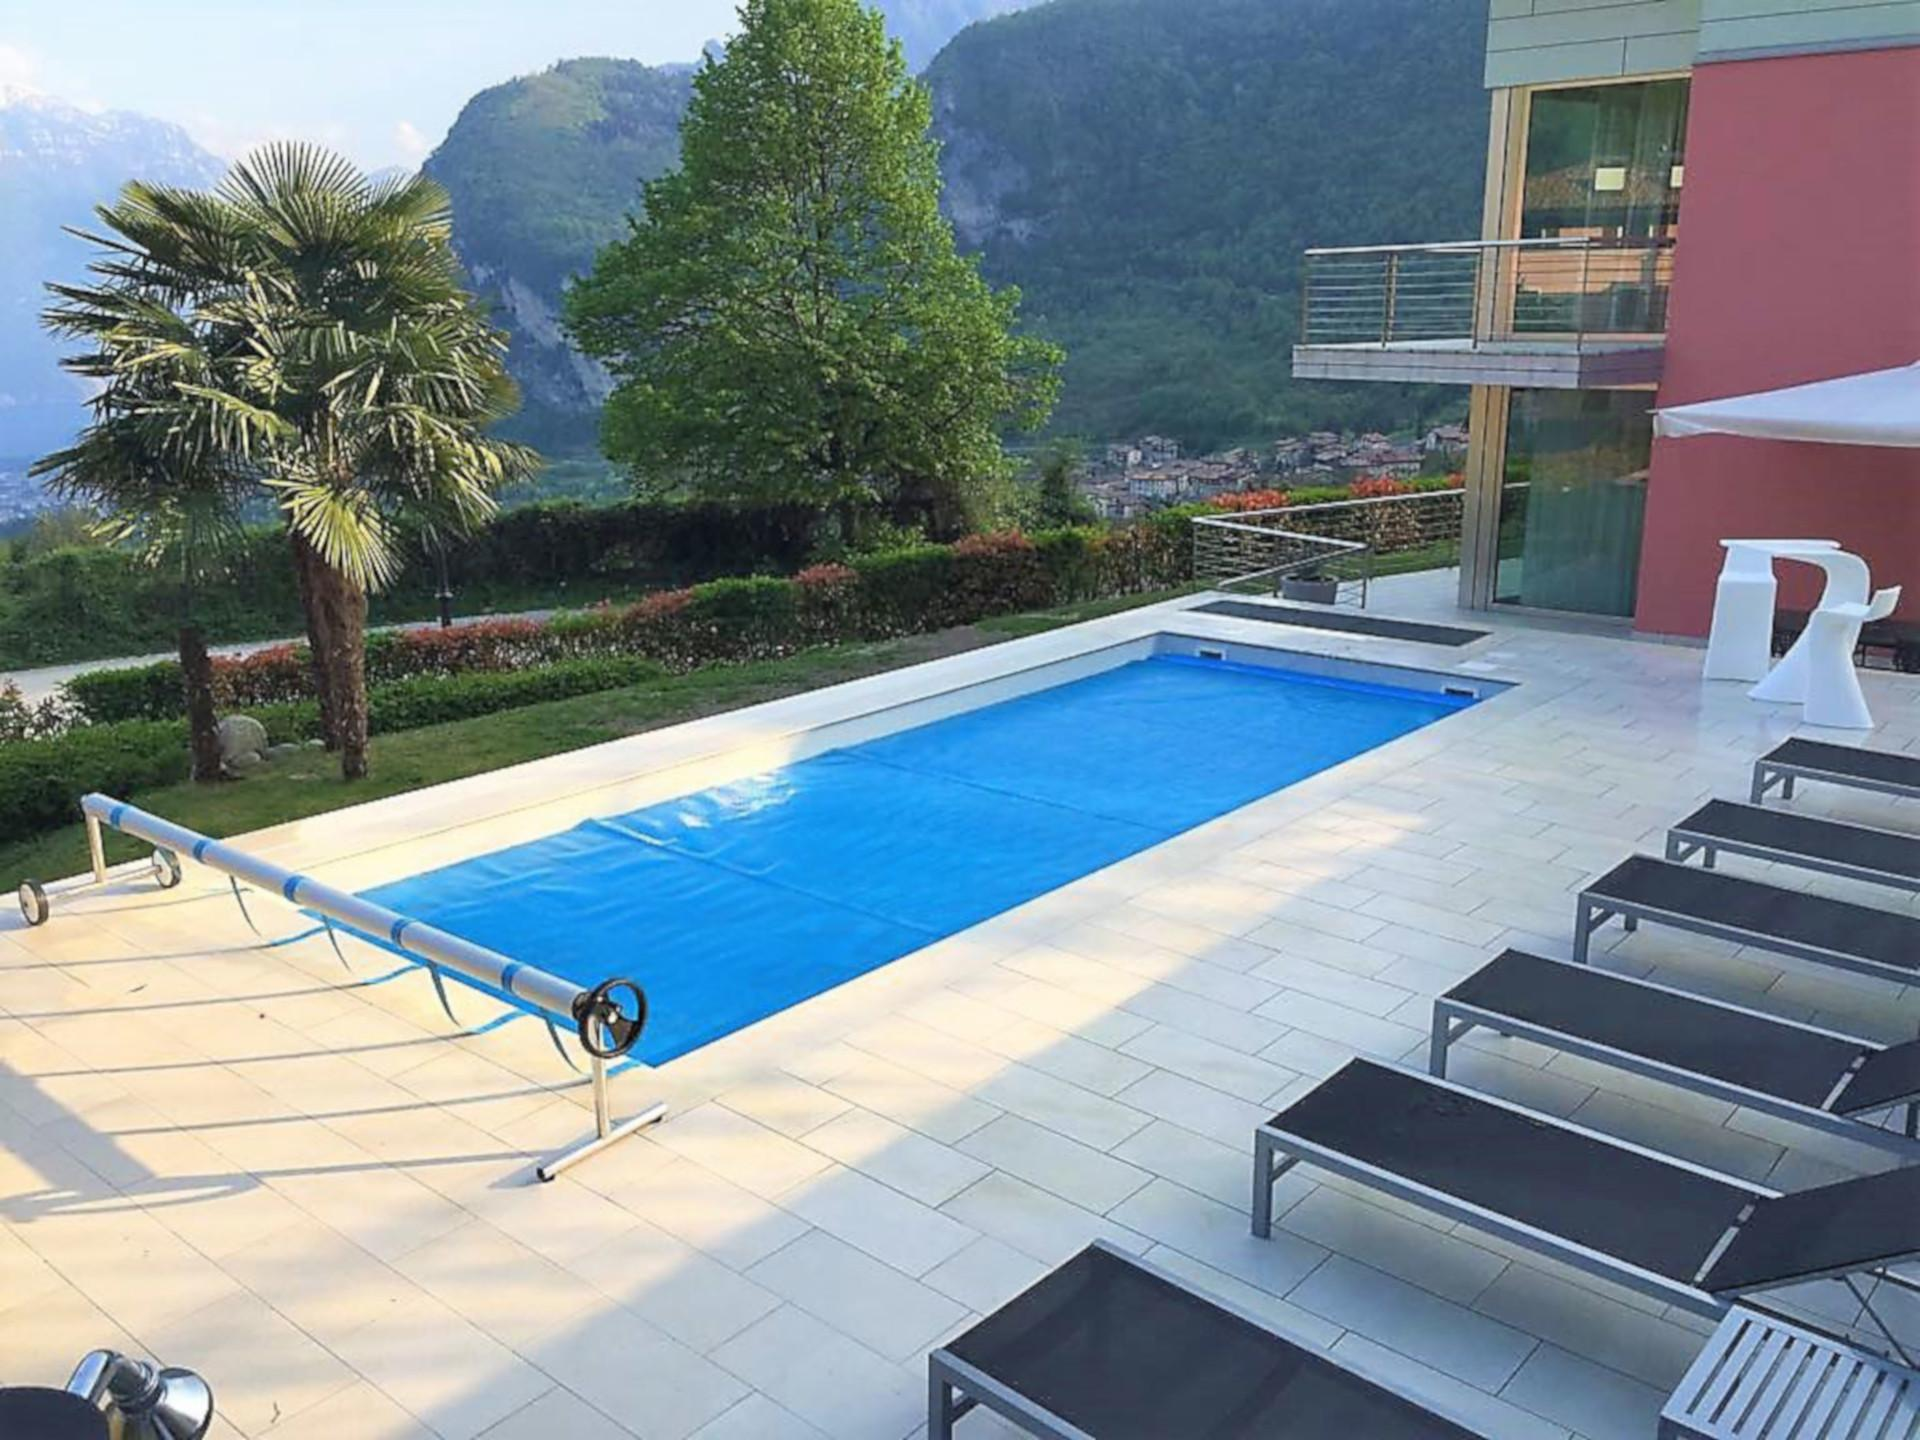 Ferienhaus Gardasee Mit Pool Privat Tenno Villa Bellavista At Lake Garda In Tenno Ville Del Monte